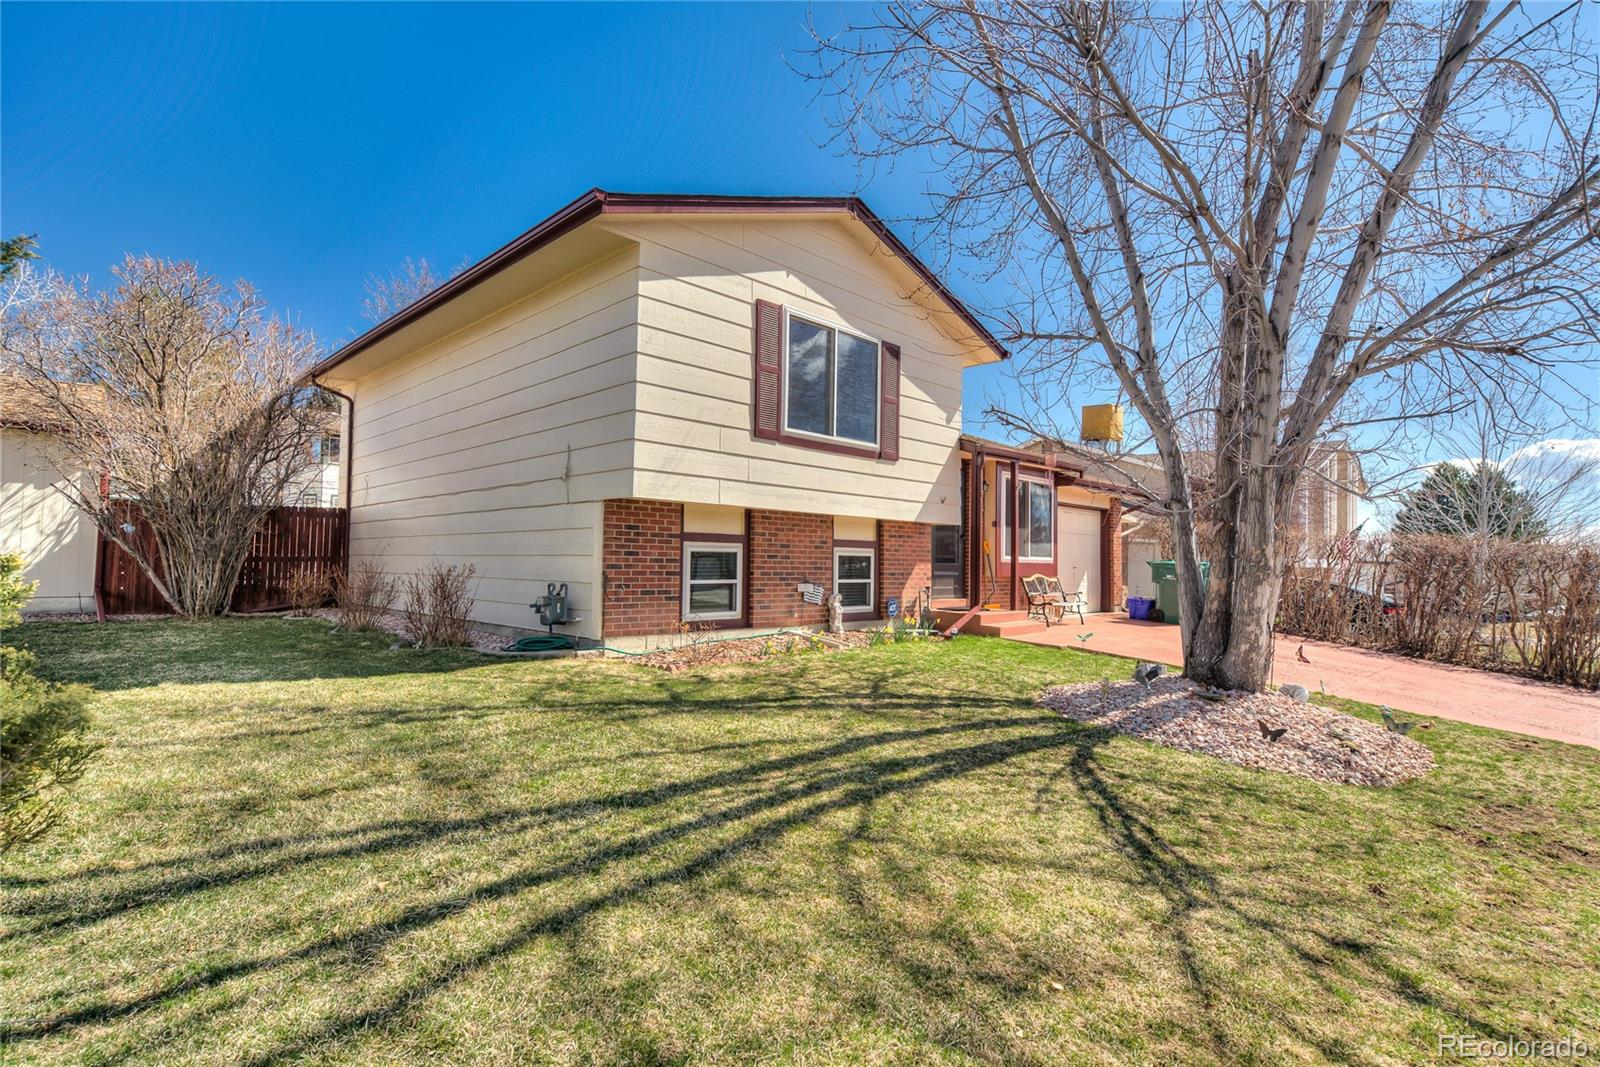 MLS# 2811379 - 2 - 9645 W David Avenue, Littleton, CO 80128